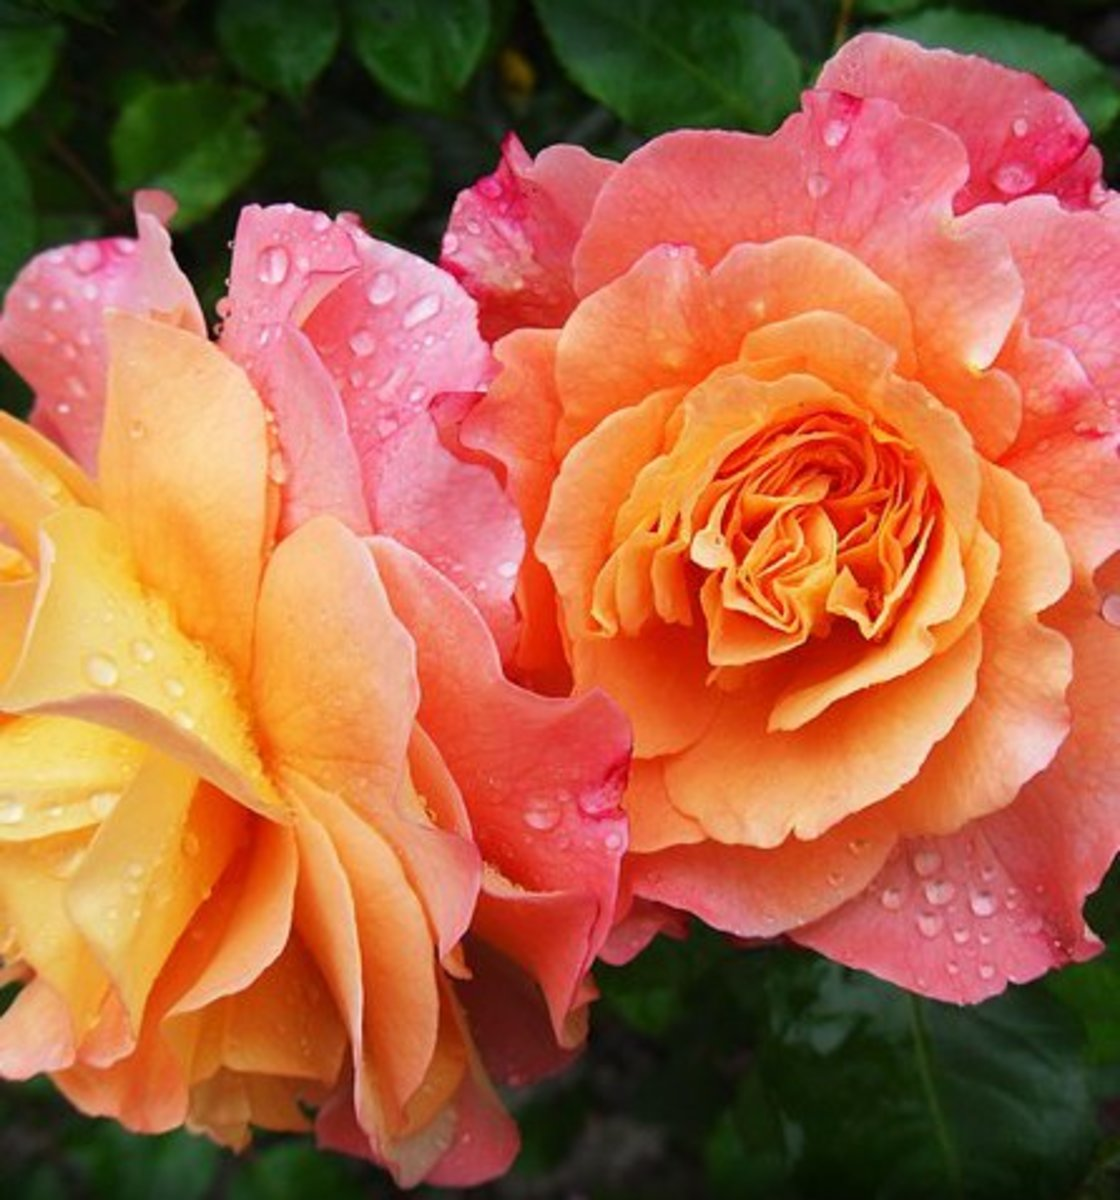 Orange color roses in bloom